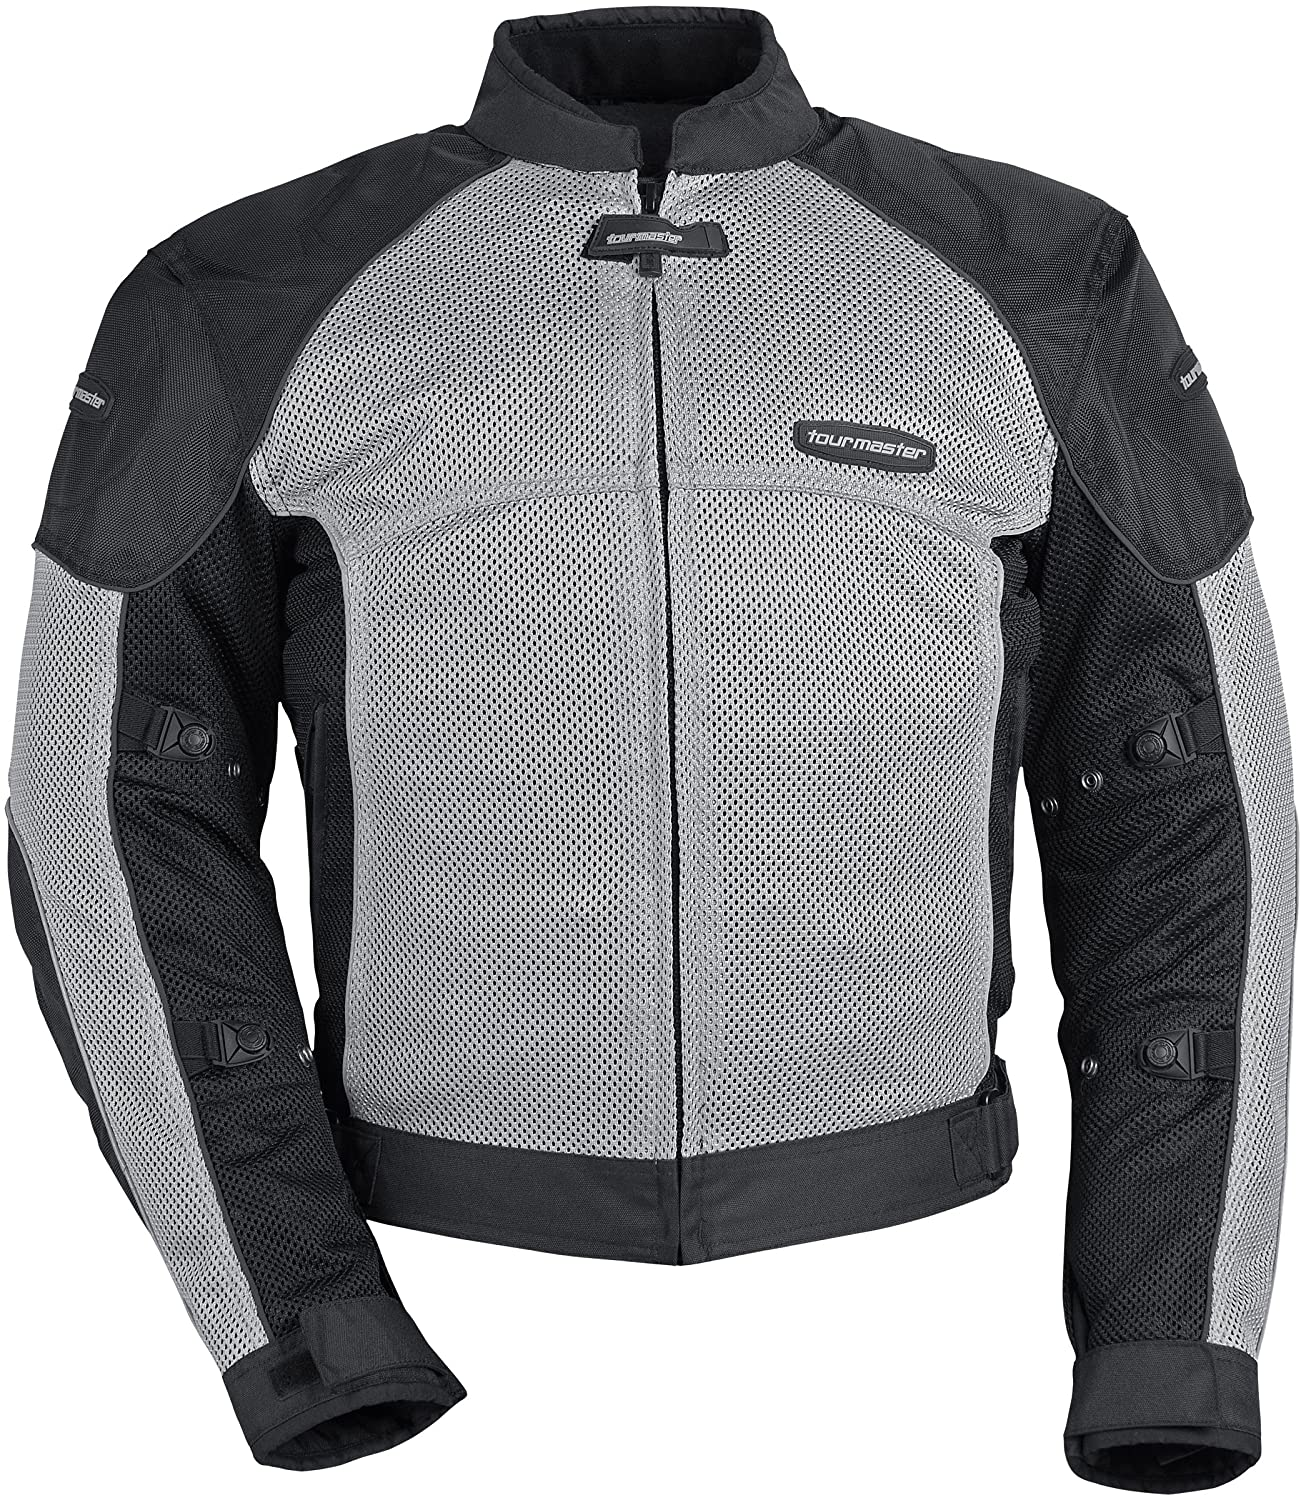 May 14, · 14 Best Motorcycle Jackets for Summer Reviewed & Compared Top 14 Best Motorcycle Jackets for Summer in – Review & Buying Guide If you're looking for the best motorcycle jacket for summer but don't have the time or mood to scour the market yourself, then you've landed in 5/5(1).